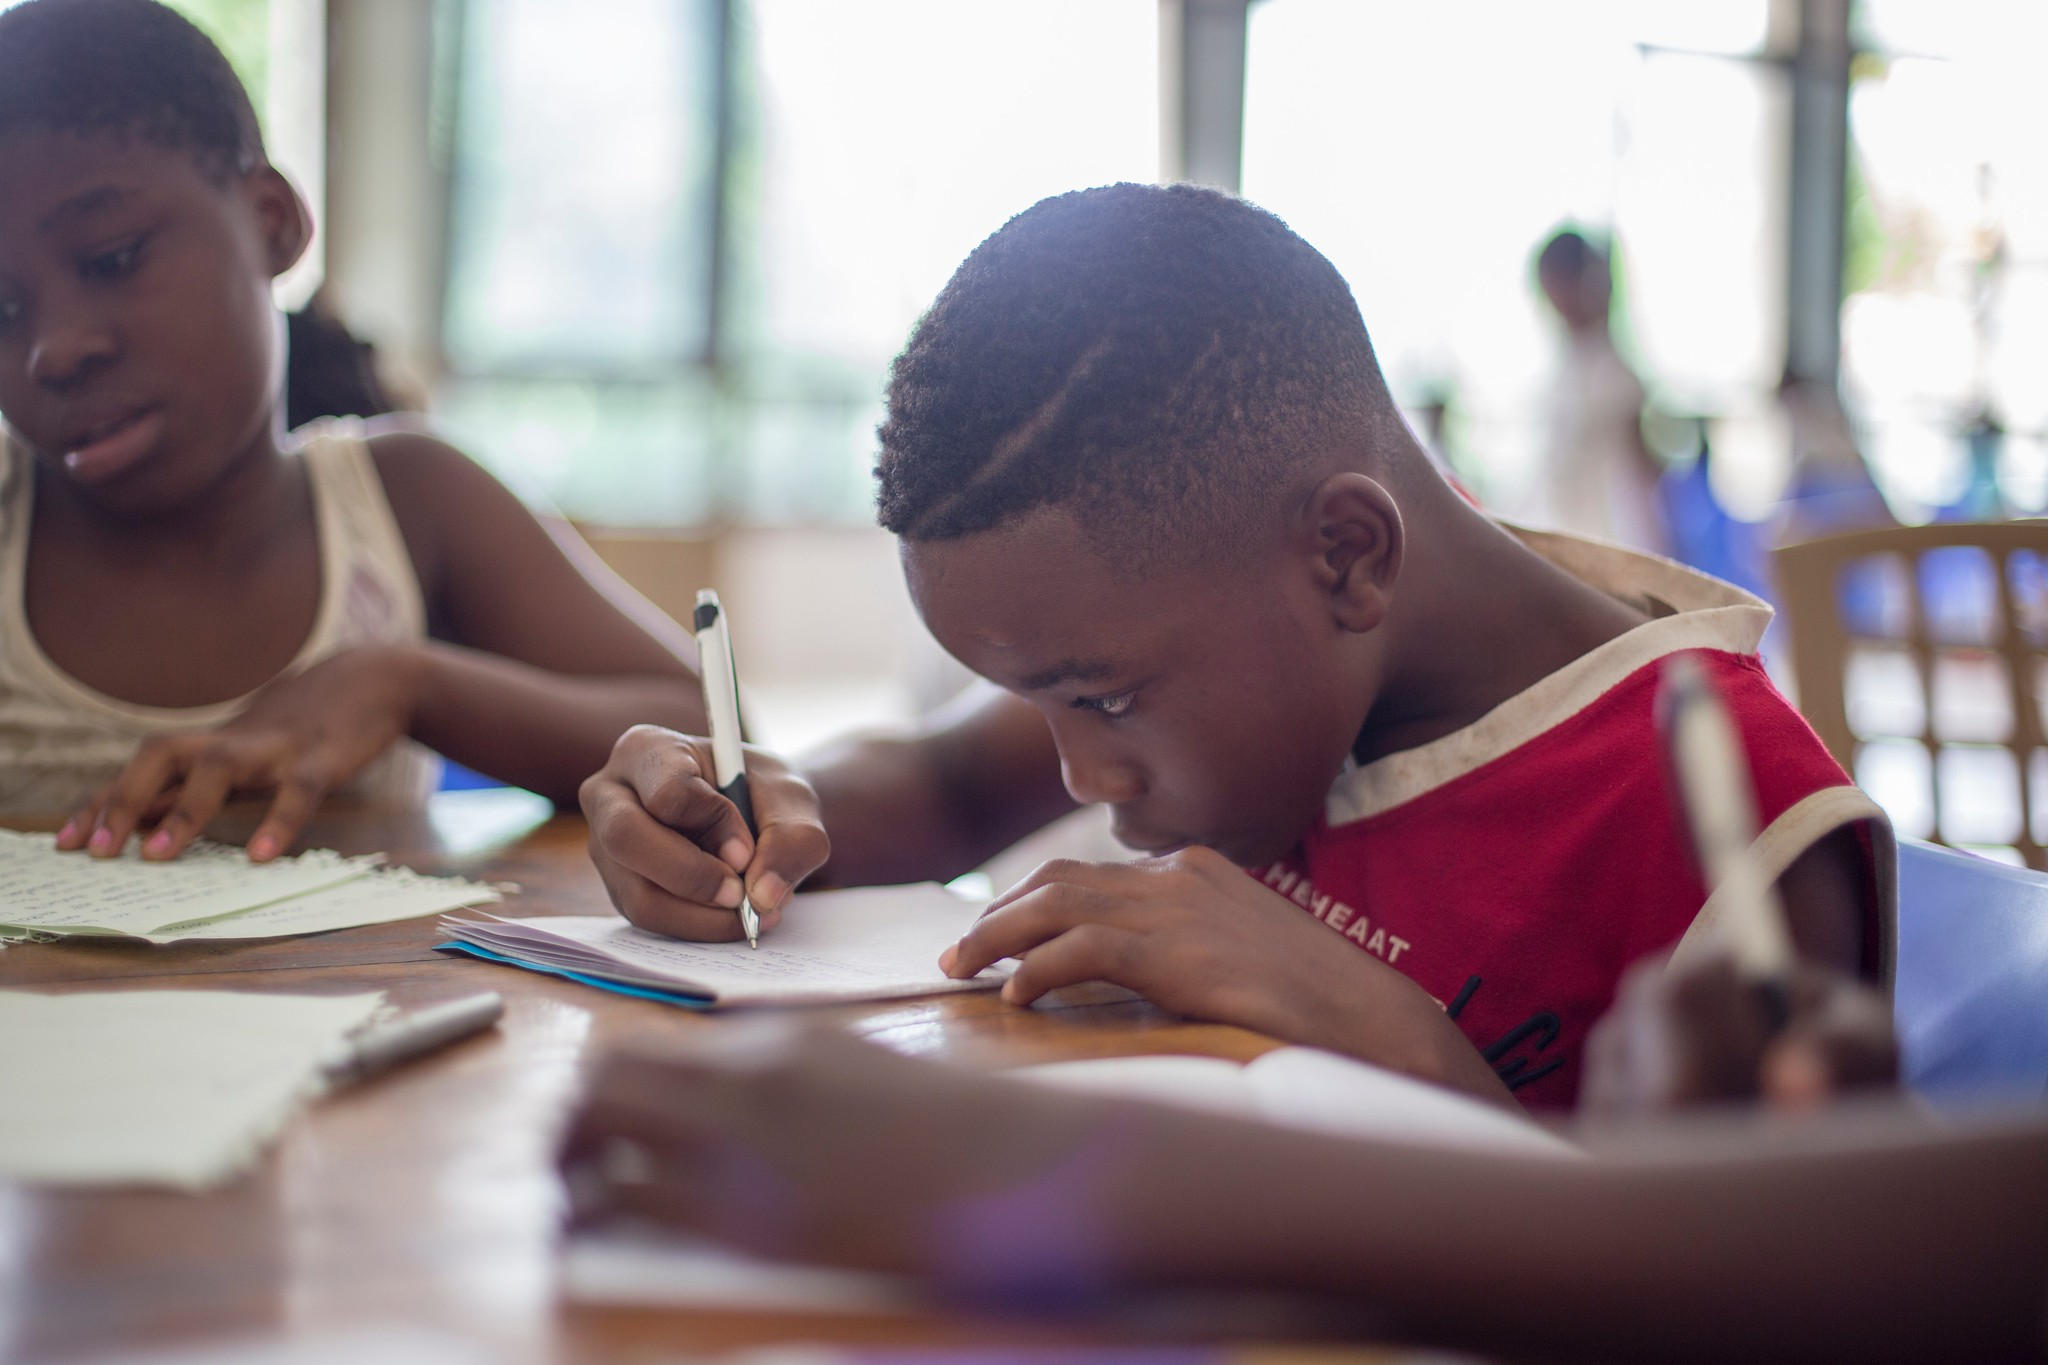 A young boy writing in his new diary.